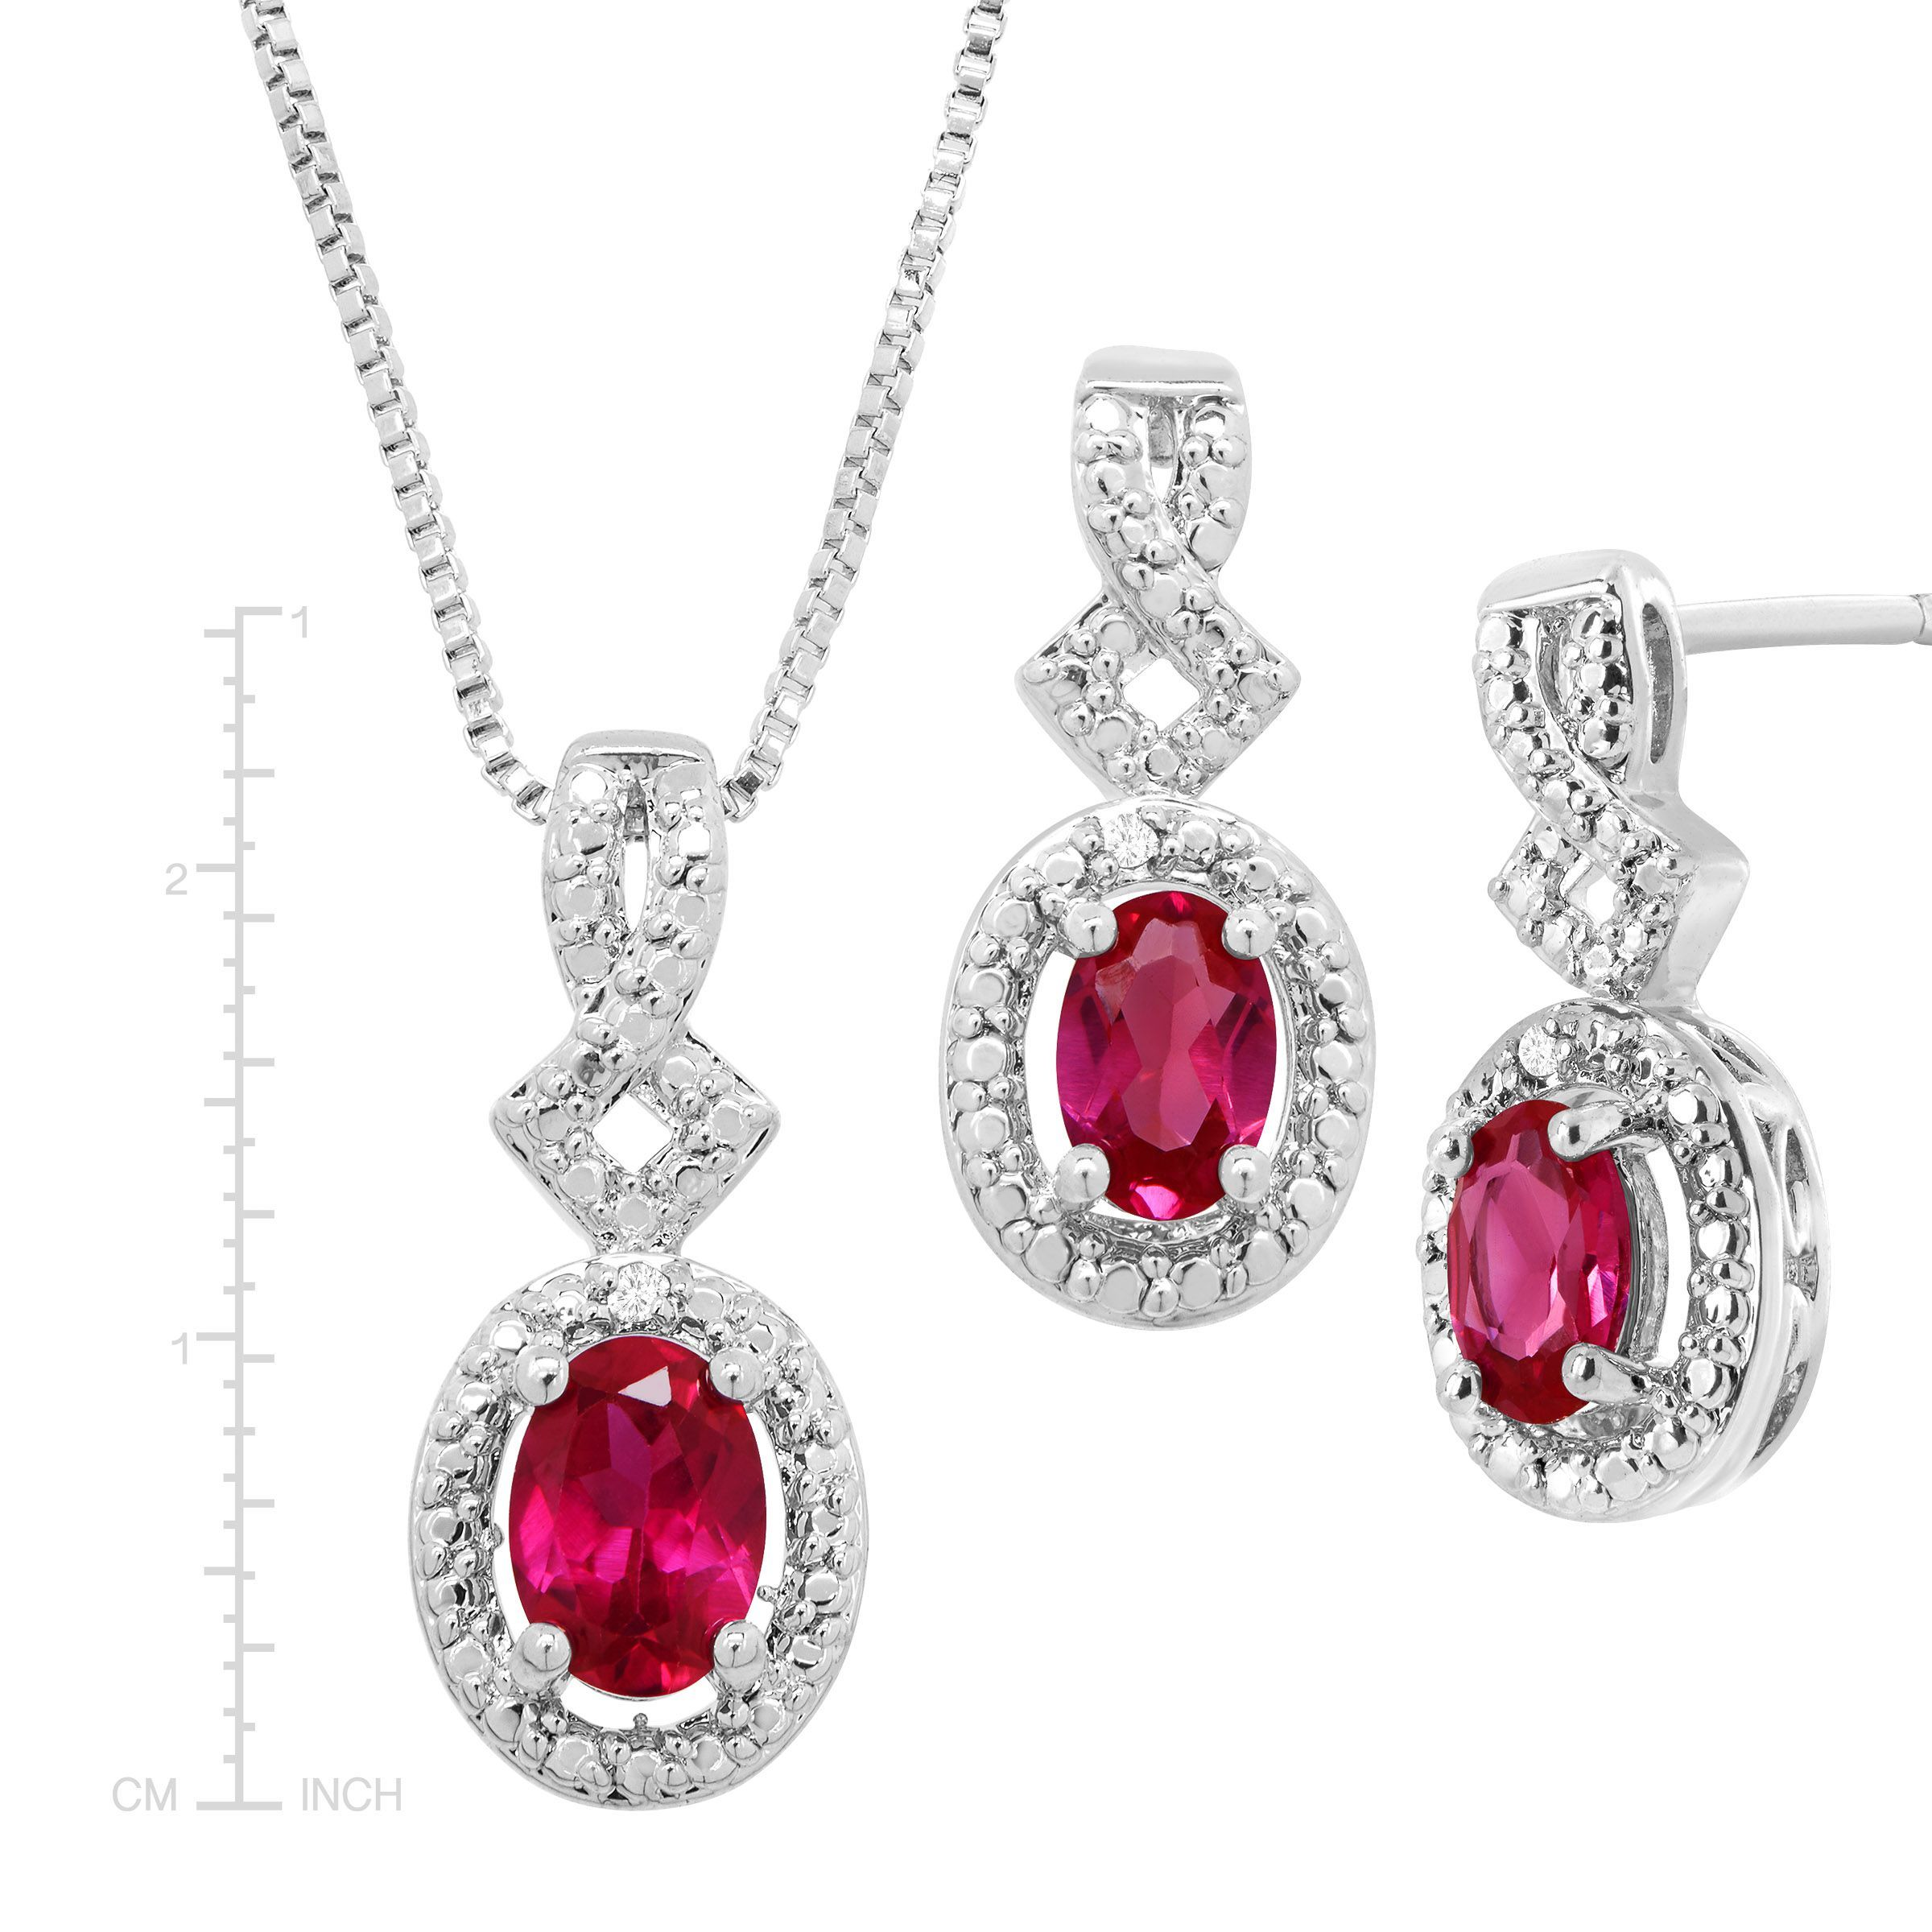 5 Ct Created Ruby 4 Piece Jewelry Set With Diamonds In